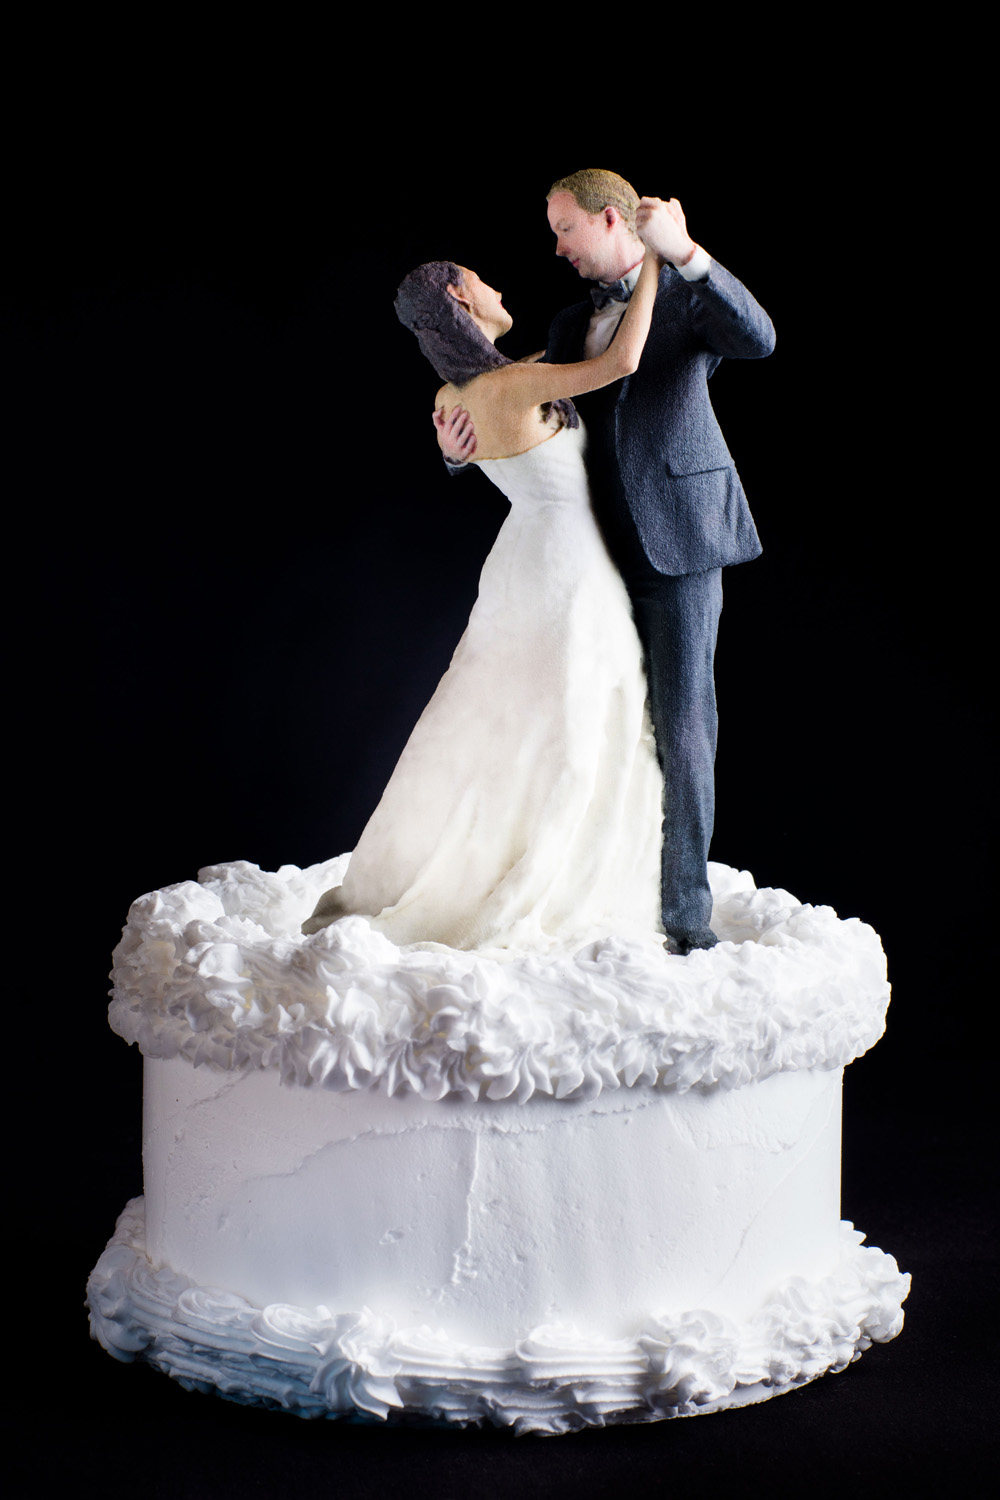 No day is as special as your wedding day! That is why this couple decided to create their own cake topper that is as perfectly unique as it is perfectly them.